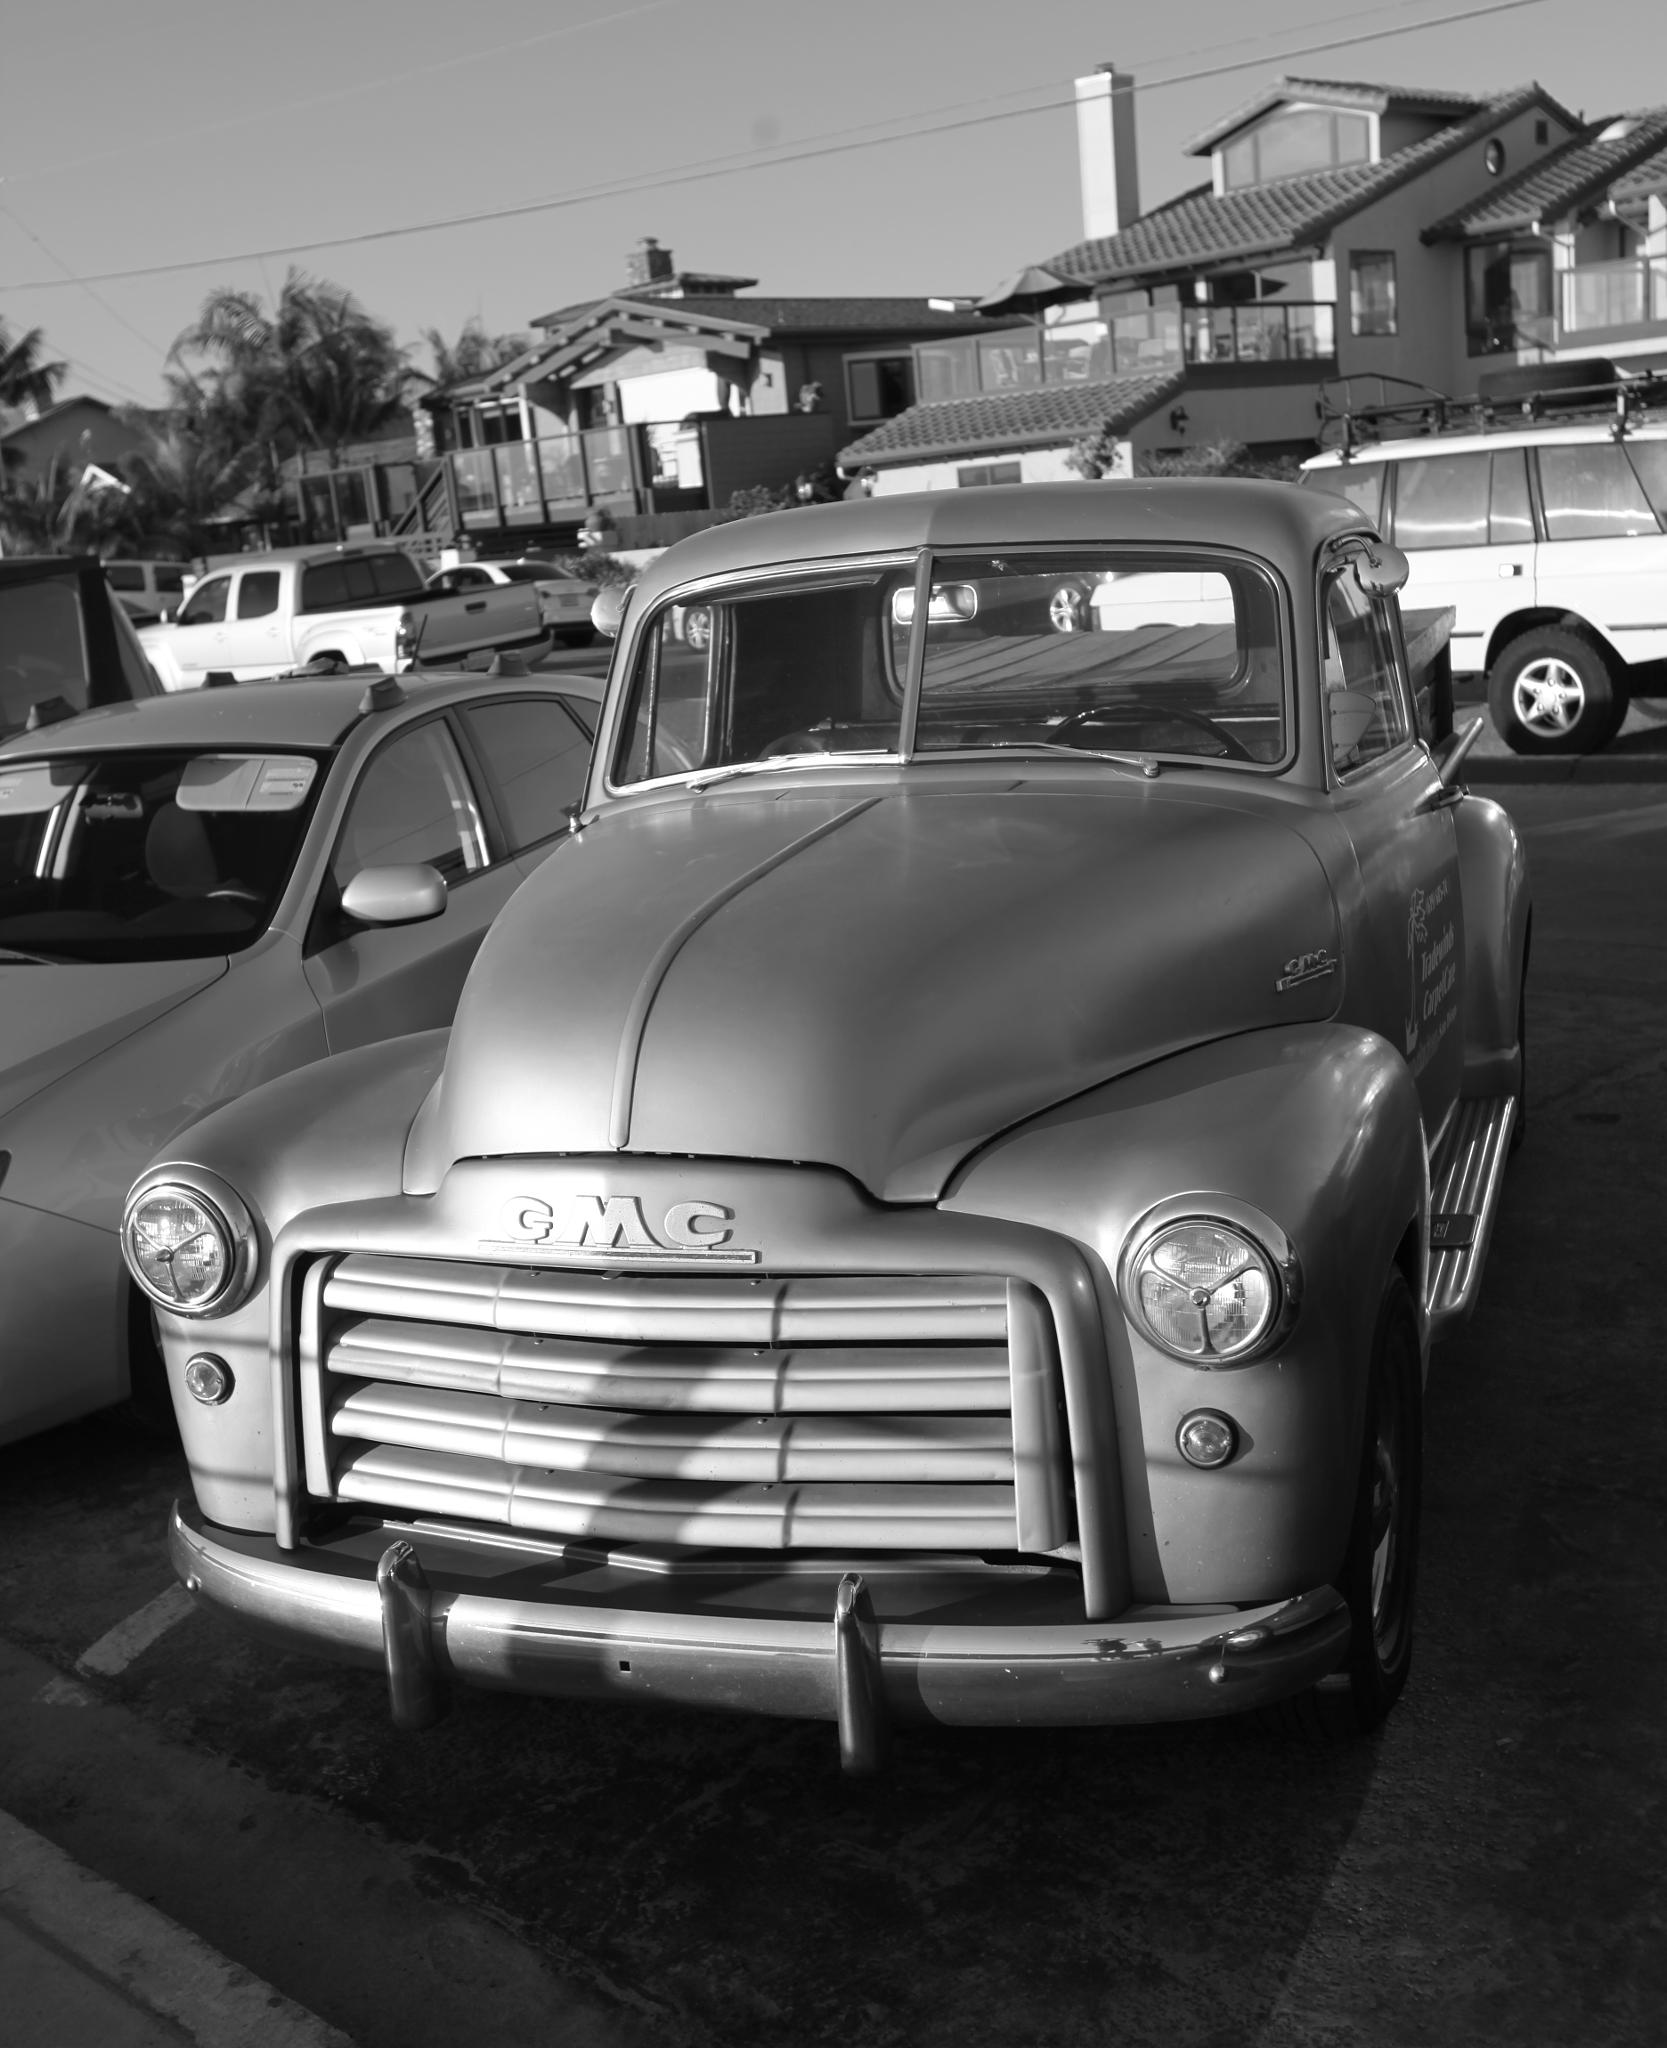 GMC truck  by nic.evans.77